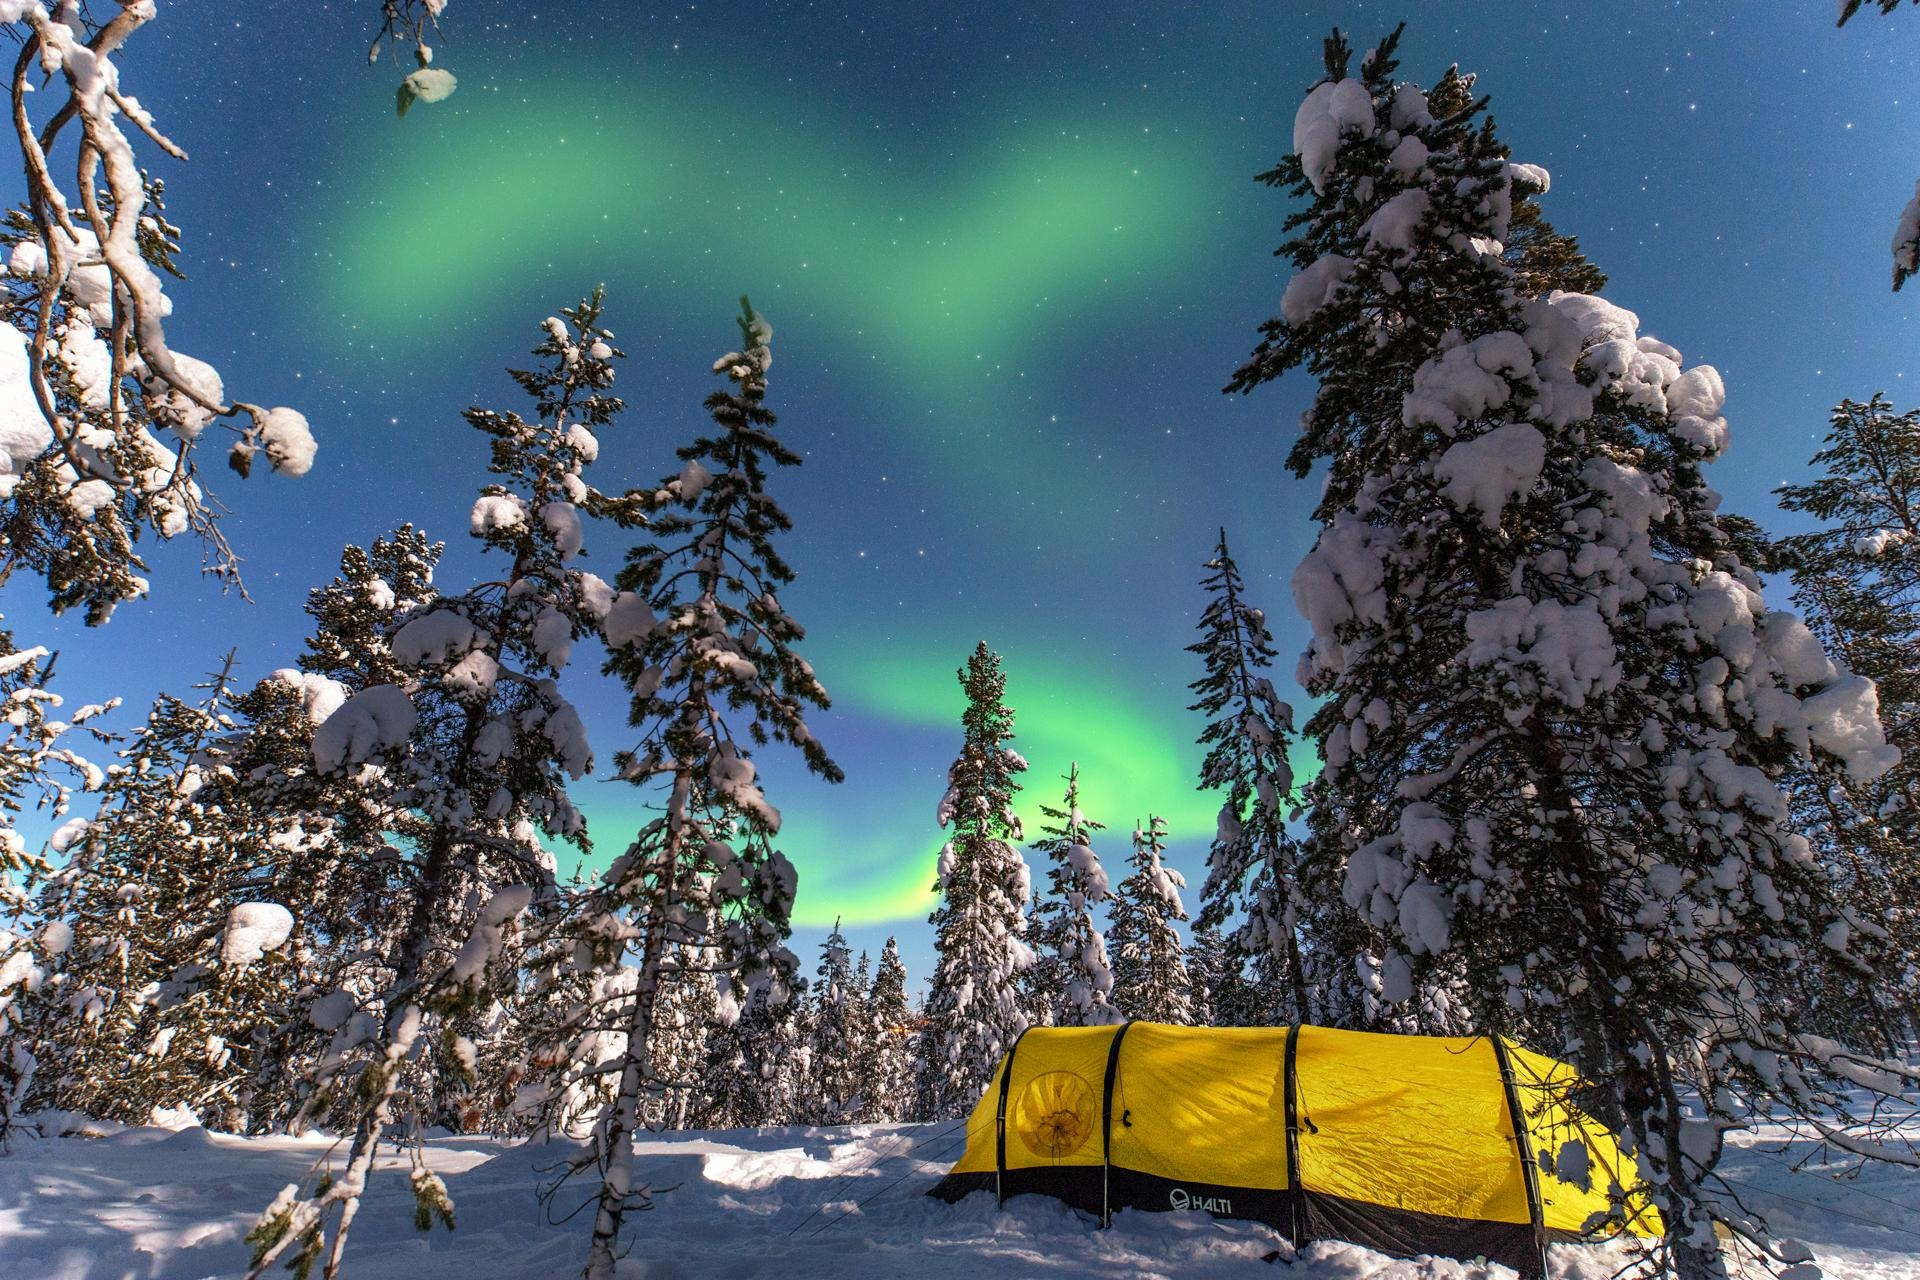 finland, finnish lappland, finnland, snow, tent, tent below aurora, tent in woods, zelt unter nordlchtern, aurora, northern lights,